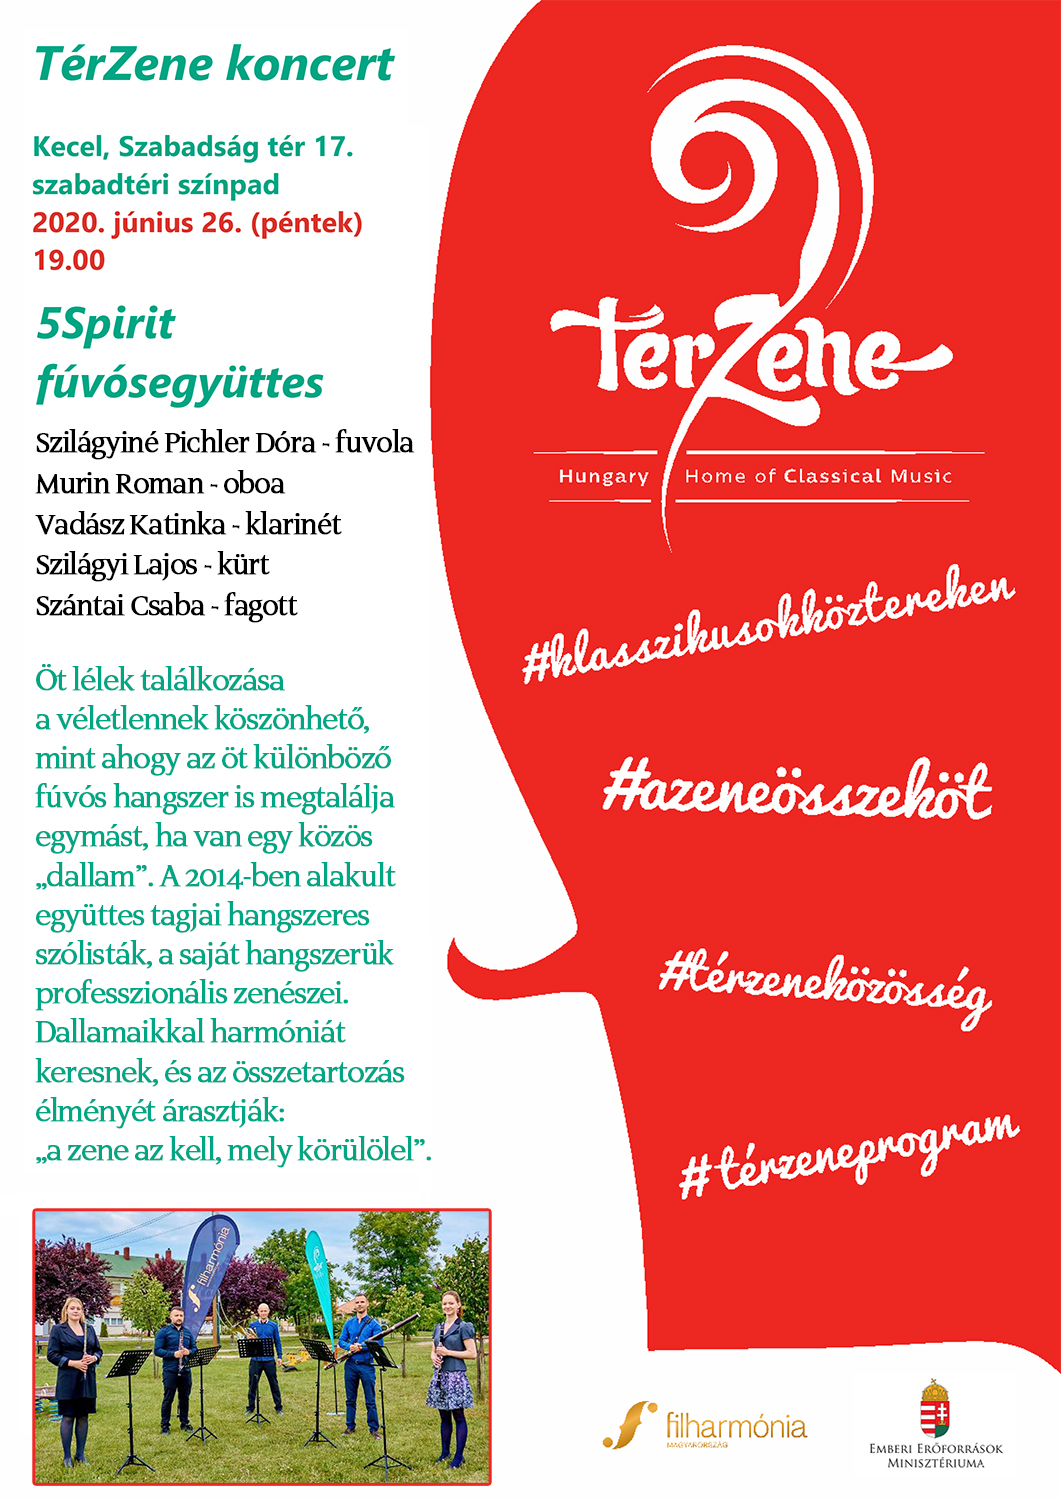 Térzene program - 2020. június 26.